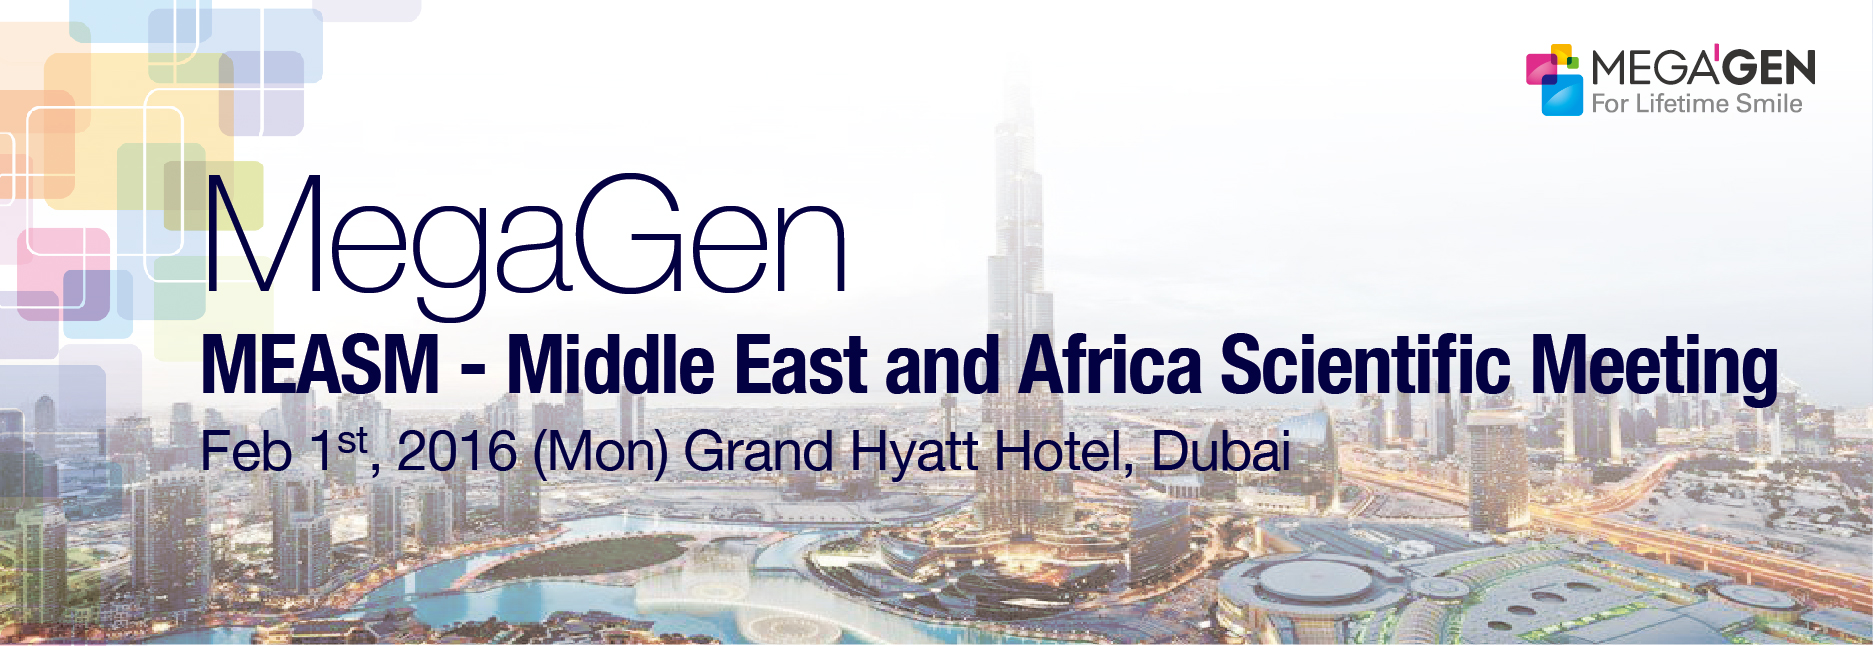 2016 MEASM – MiddleEast & Africa Scientific Meeting